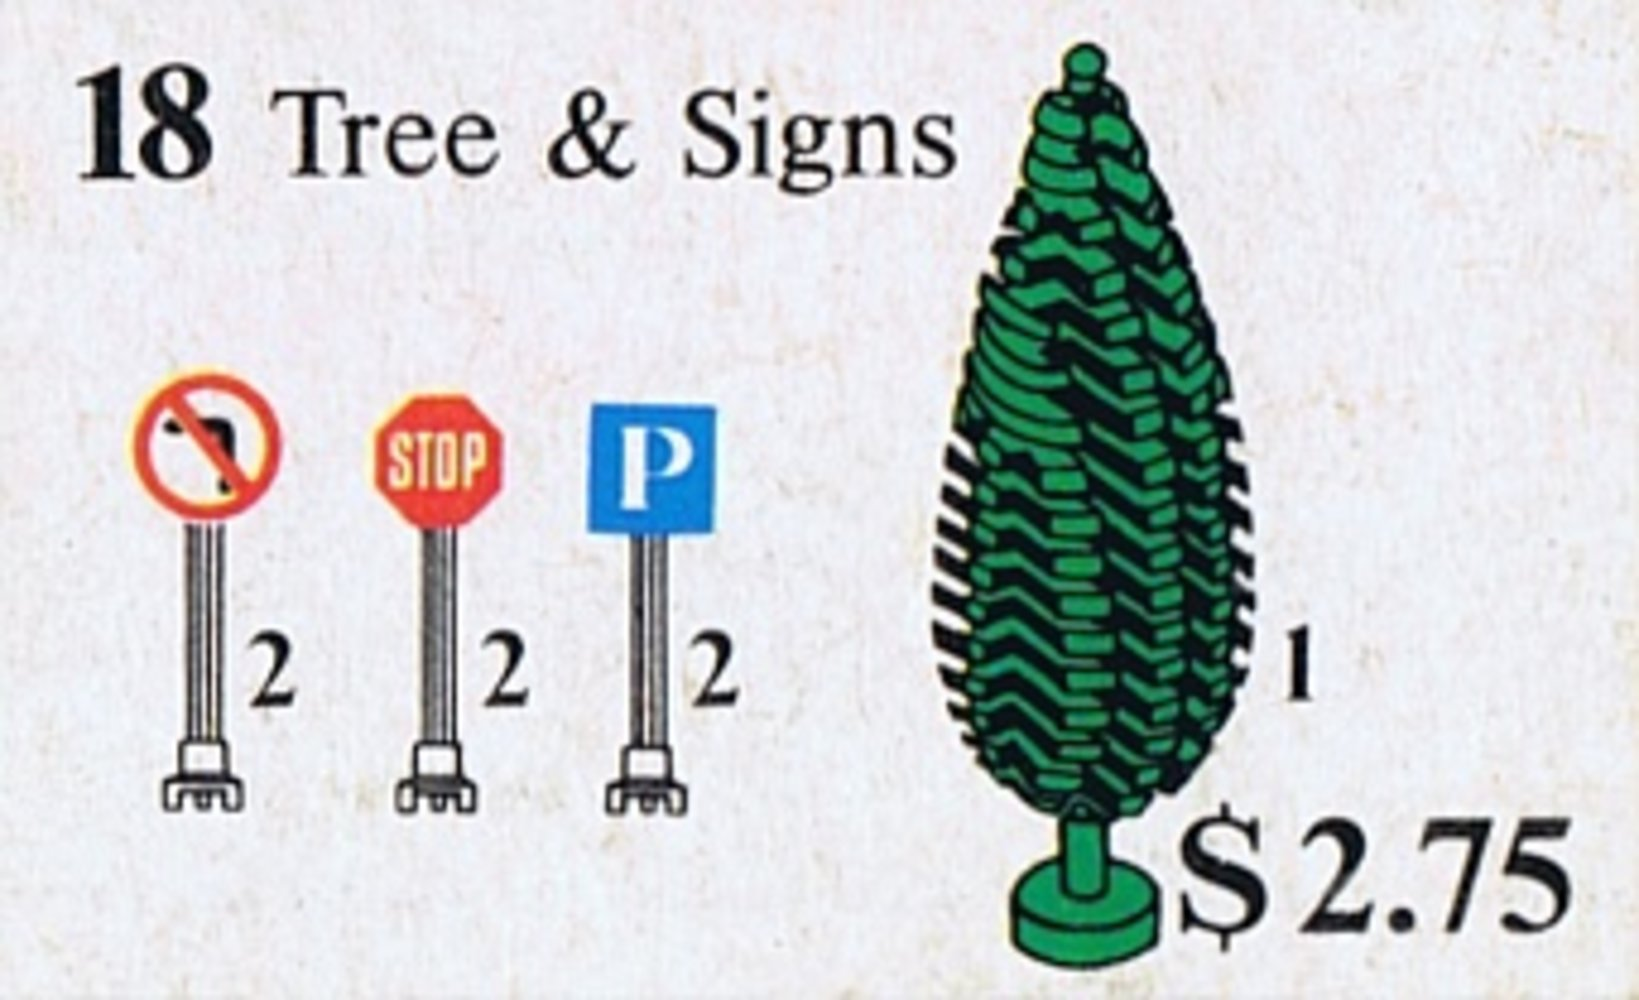 Tree and Signs